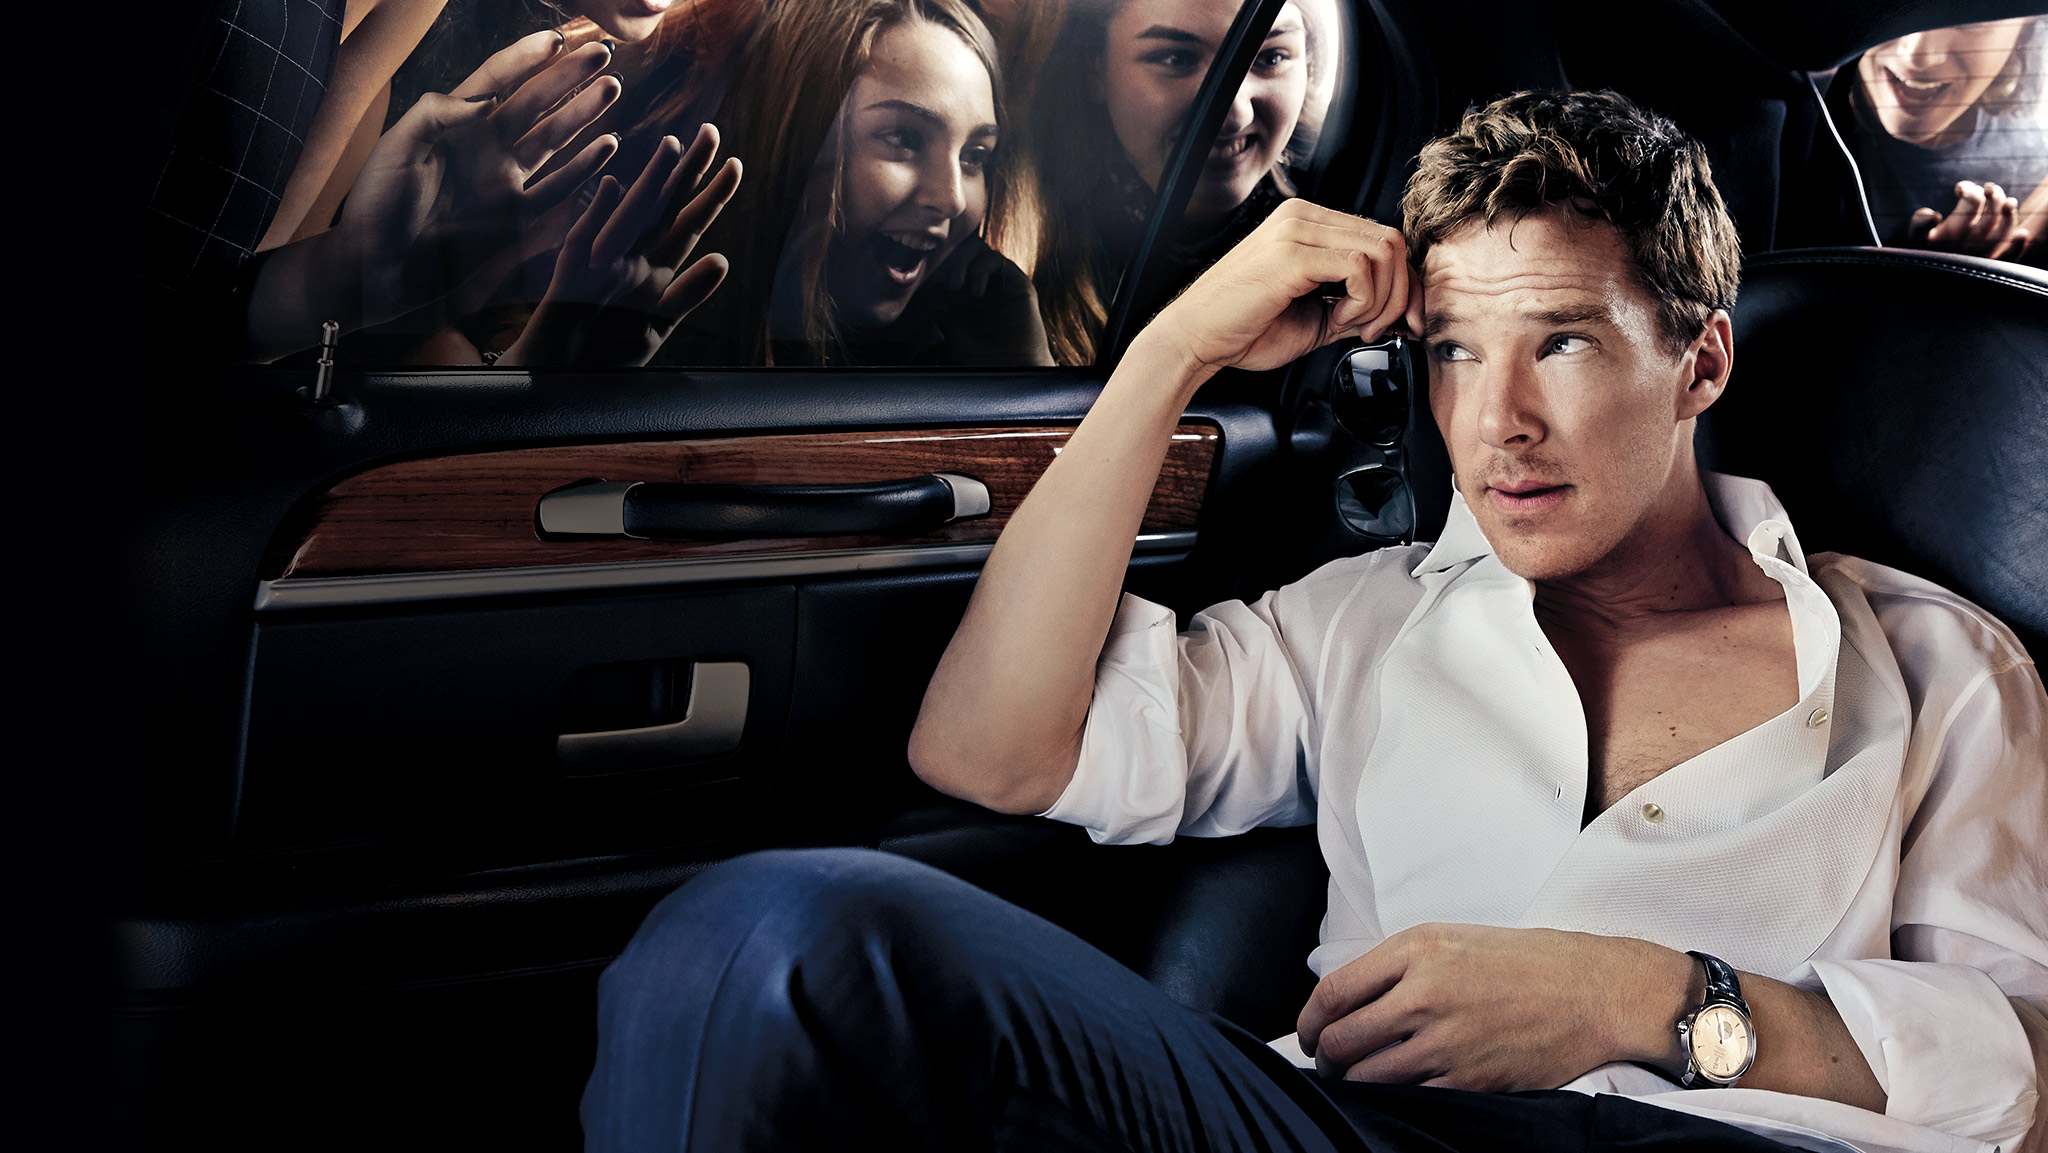 Benedict and the Cumberbitches: What Fame Looks Like From Inside a Meme